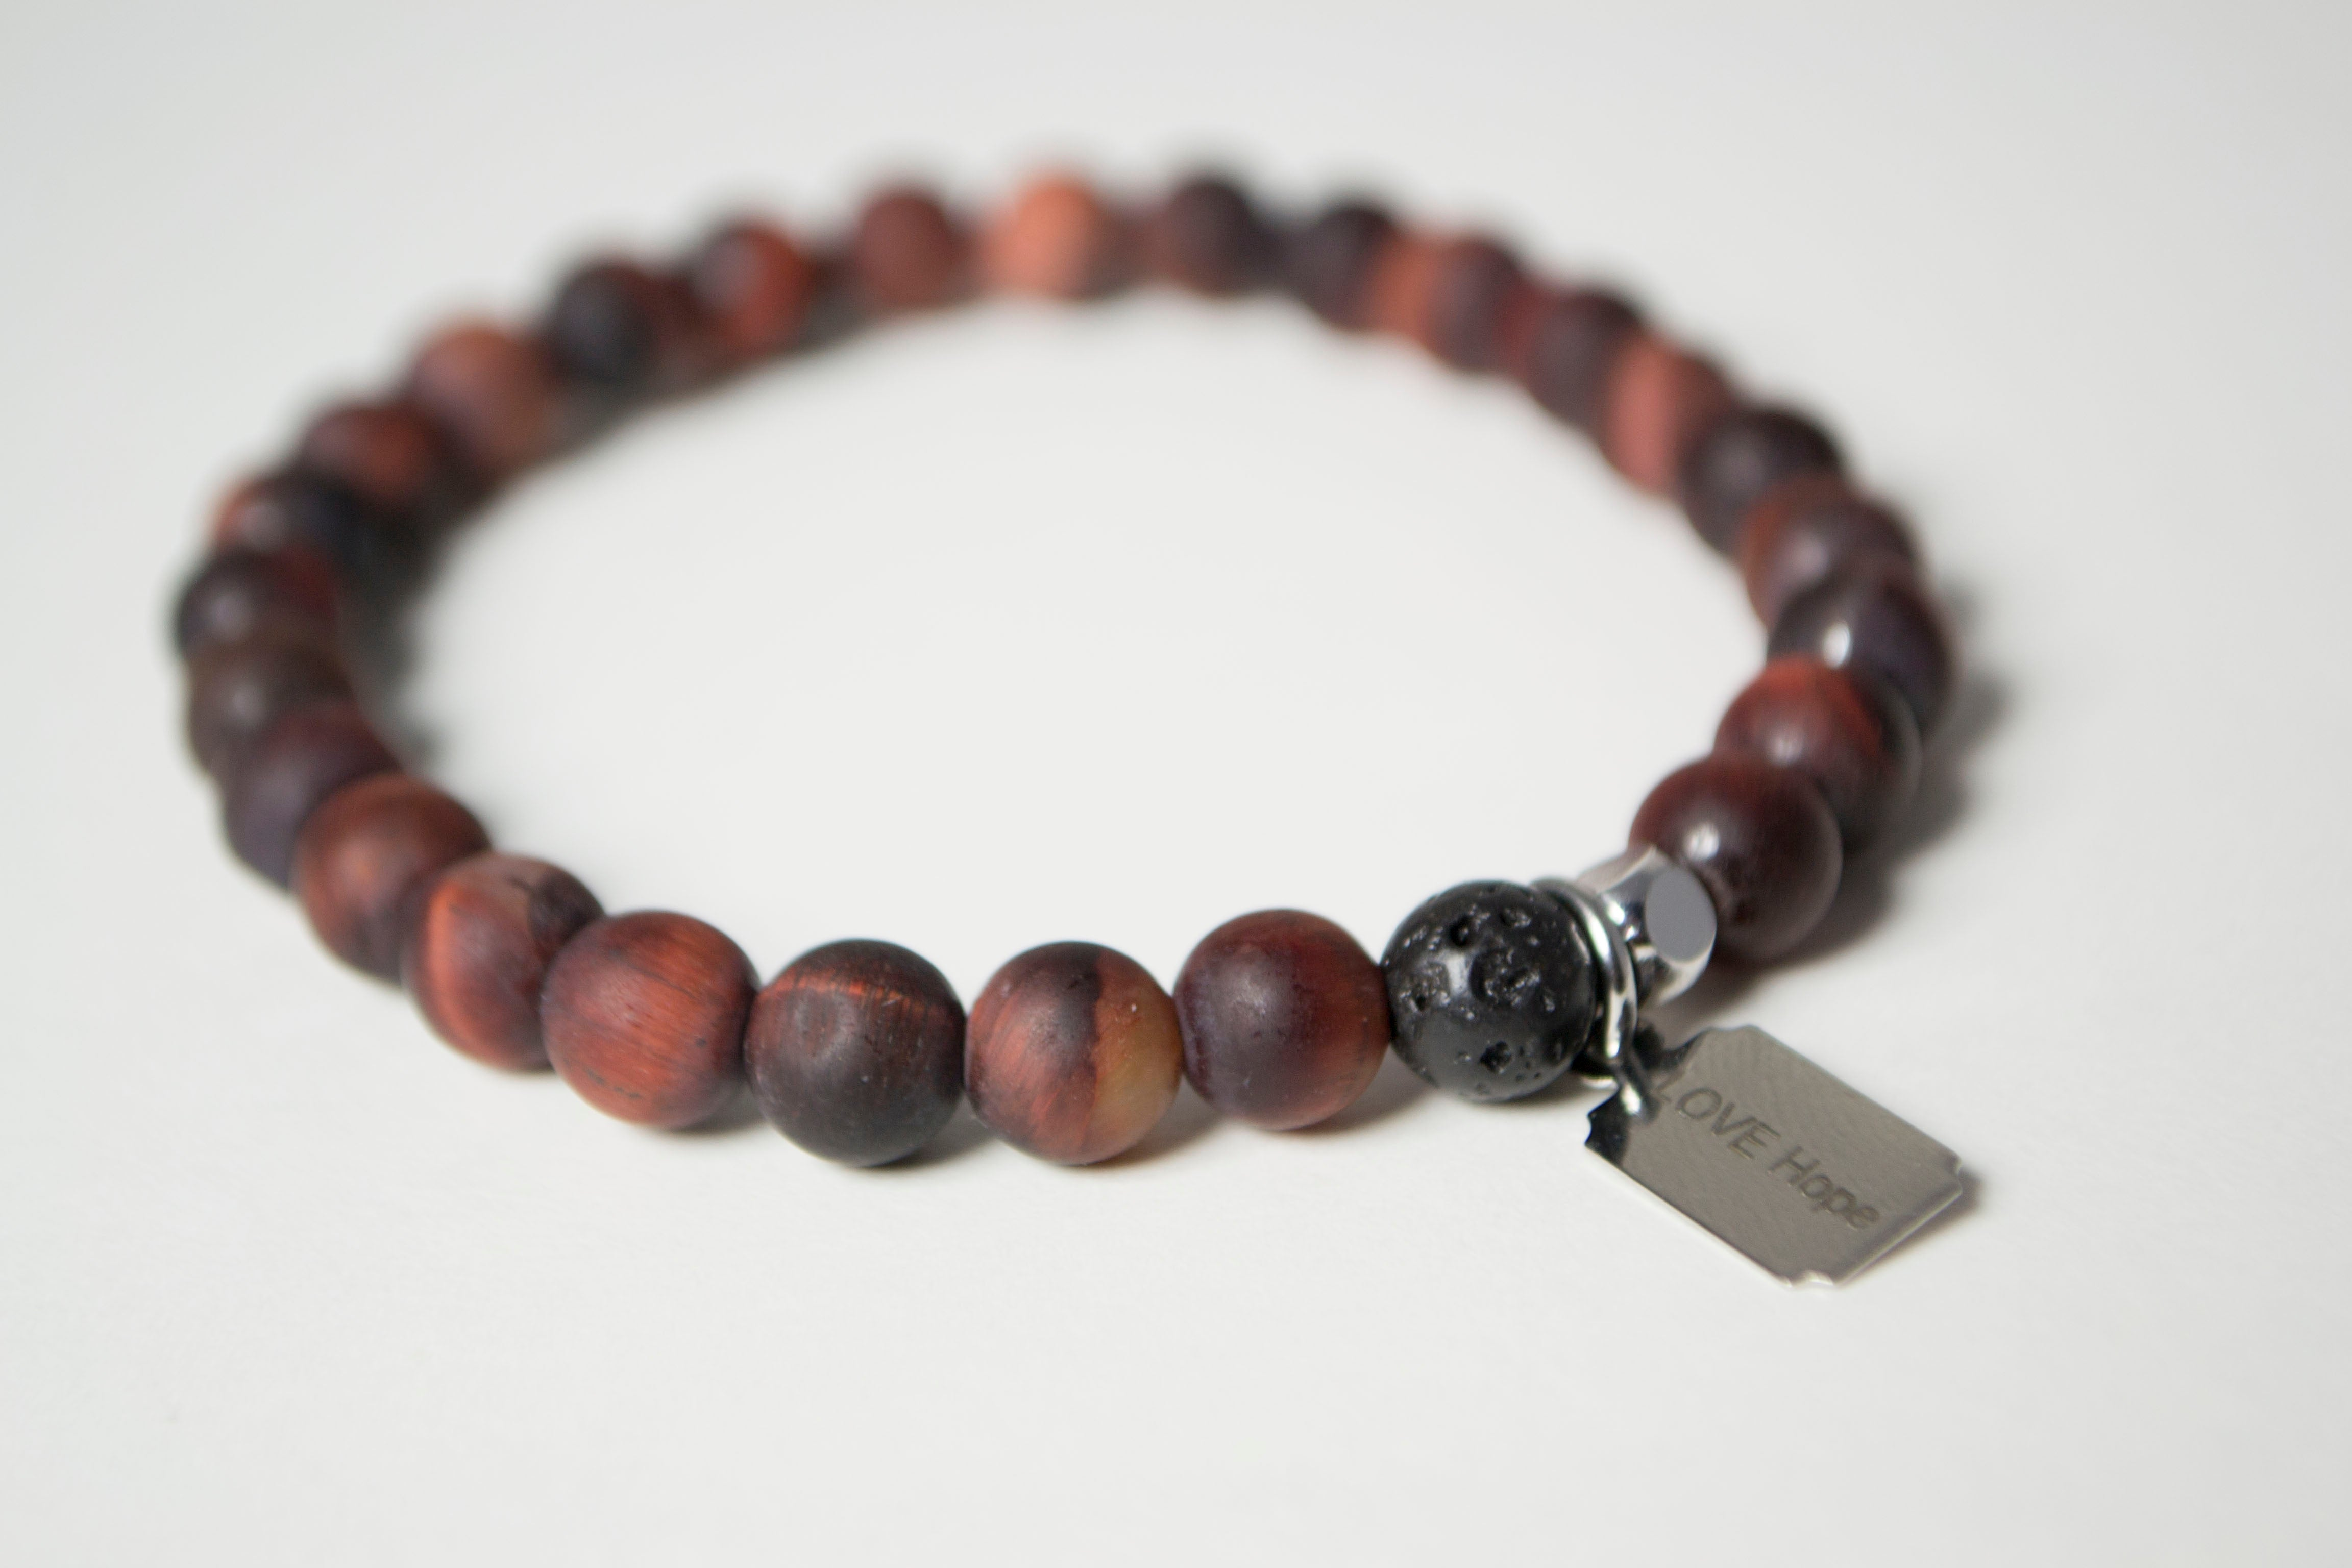 Rear view of the natural stones in the Infused Red Tiger's Eye bracelet with details of the color and texture of the infusible Lava Stone. In the background is a blurred view of the front of the bracelet